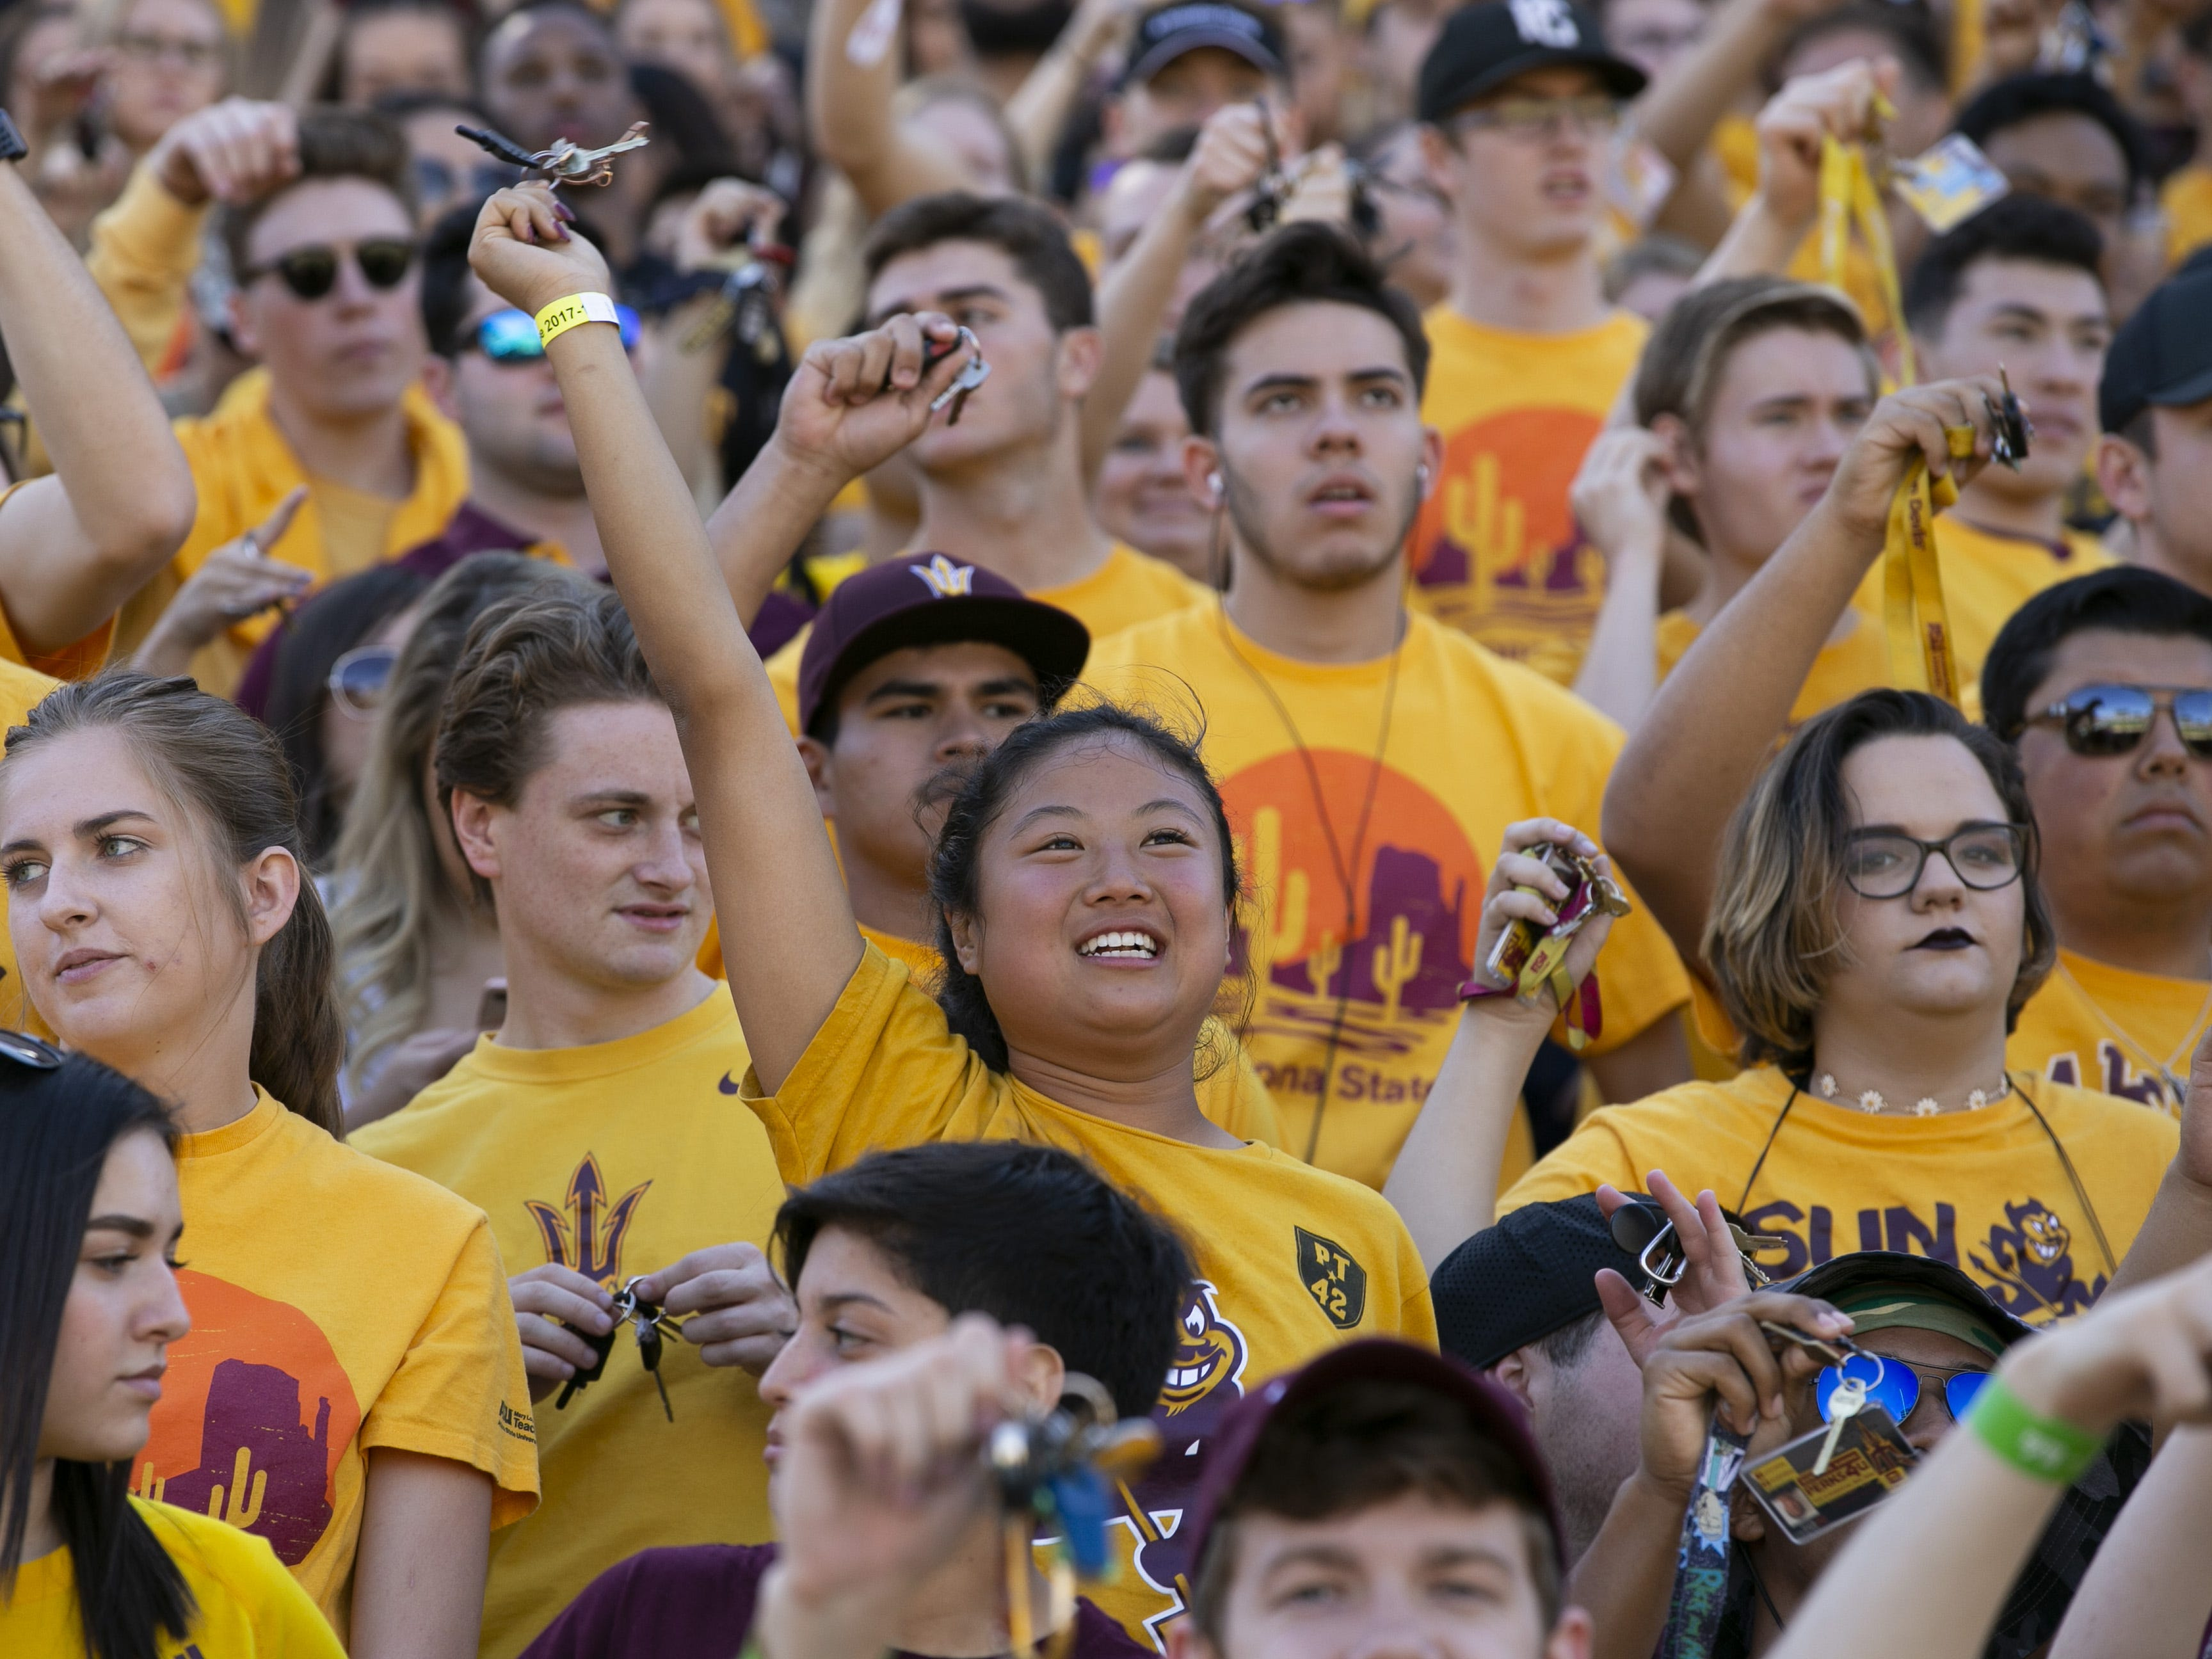 ASU fans watch the first quarter of the PAC-12 college football game against UCLA at Sun Devil Stadium in Tempe on Saturday, November 10, 2018.